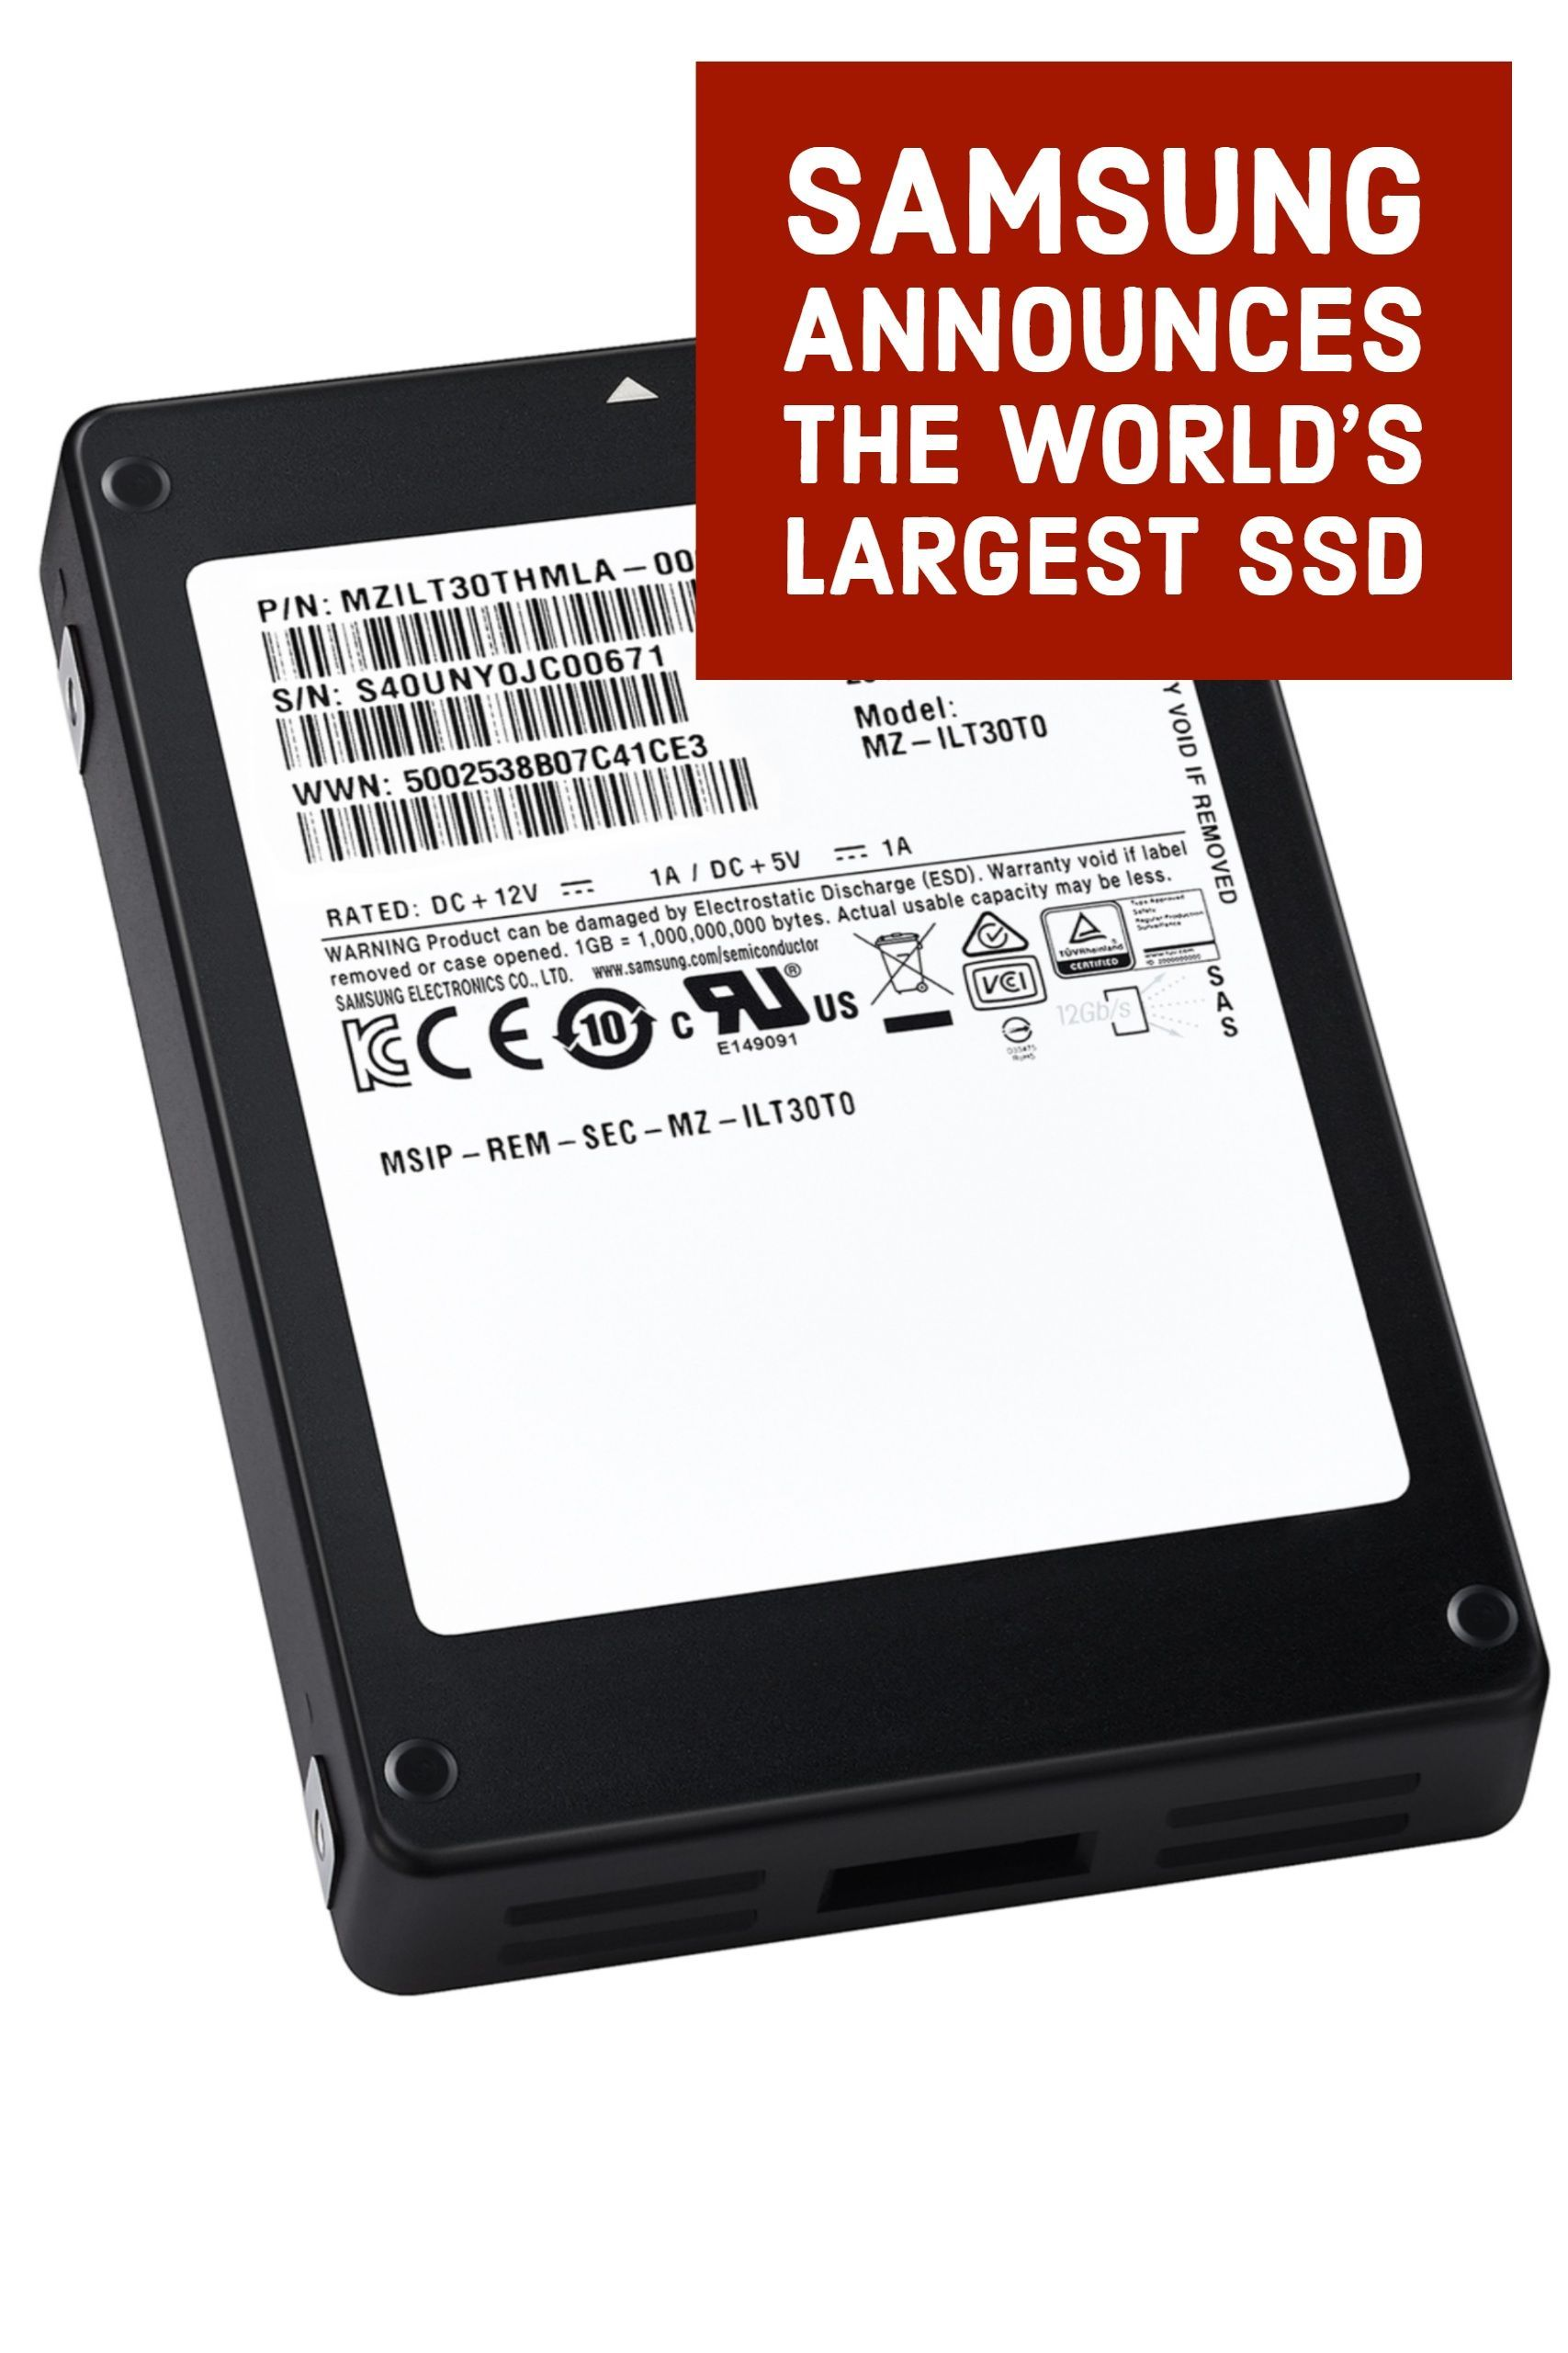 samsung squeezes 30tb into